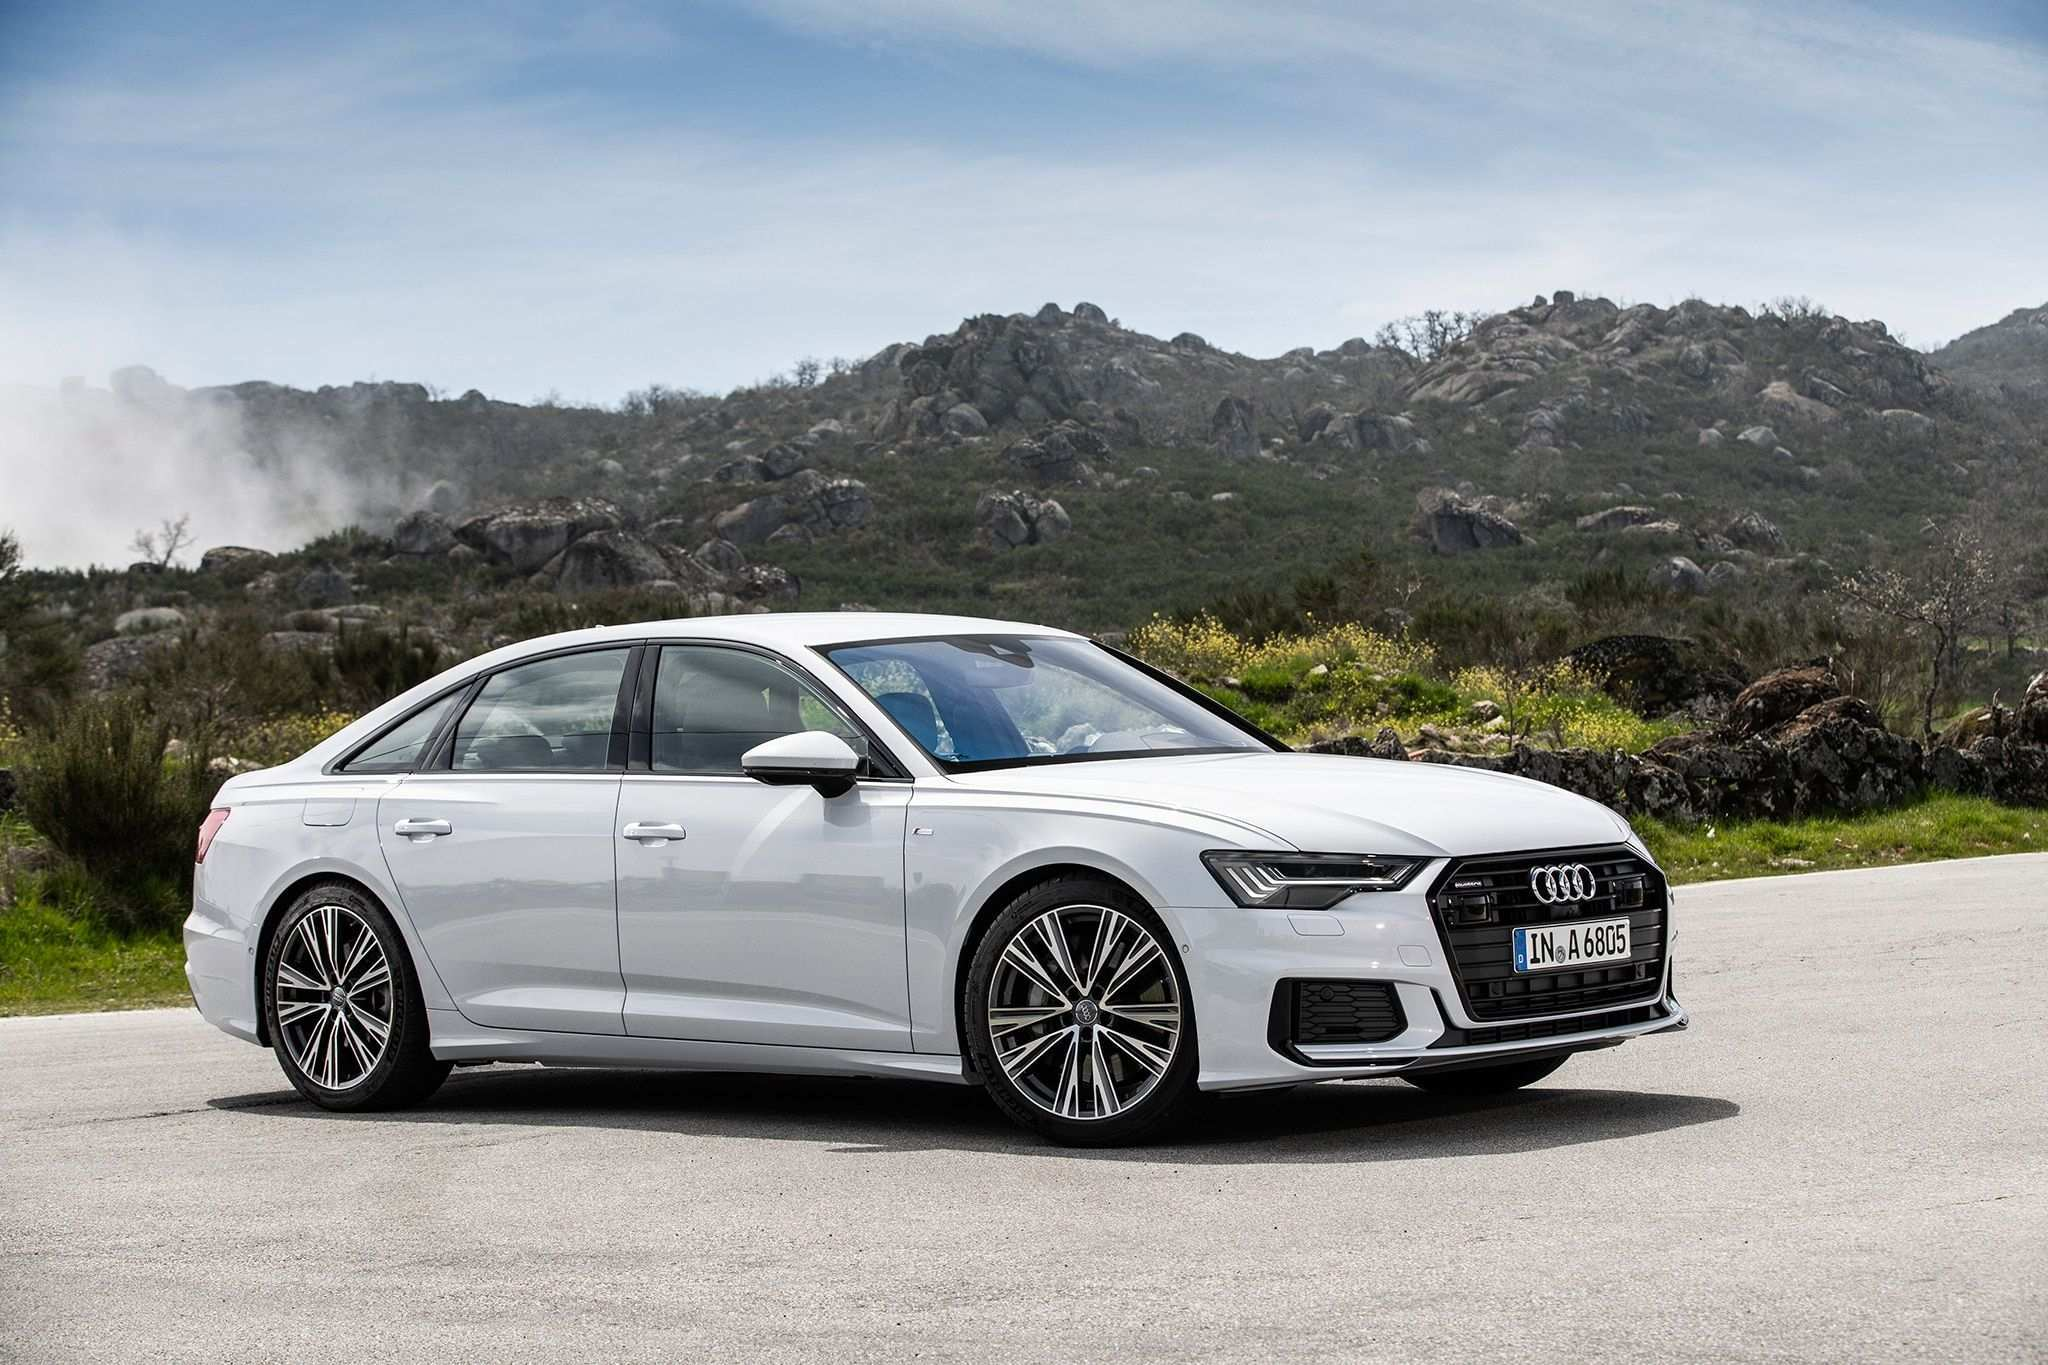 28 New Review Audi 2019 A6 New Interior Specs and Review by Review Audi 2019 A6 New Interior